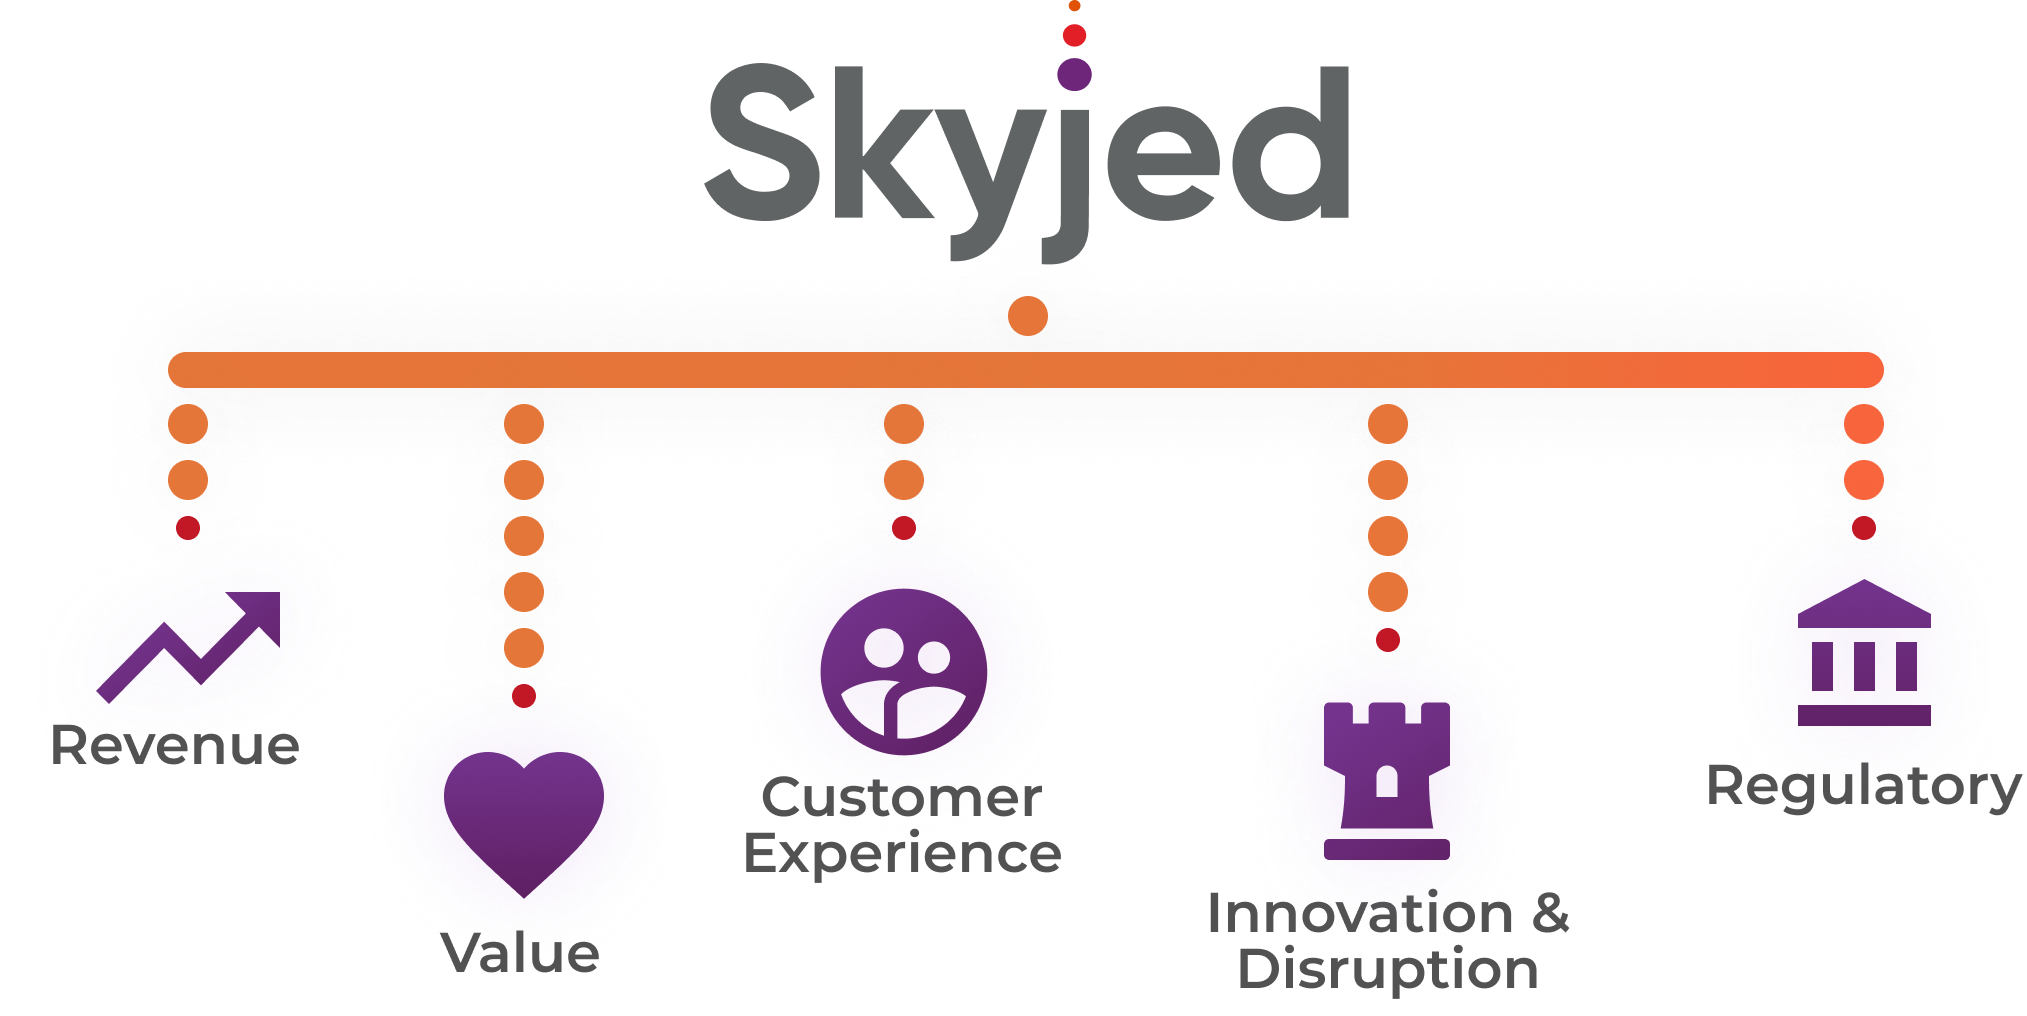 Skyjed Product Domains